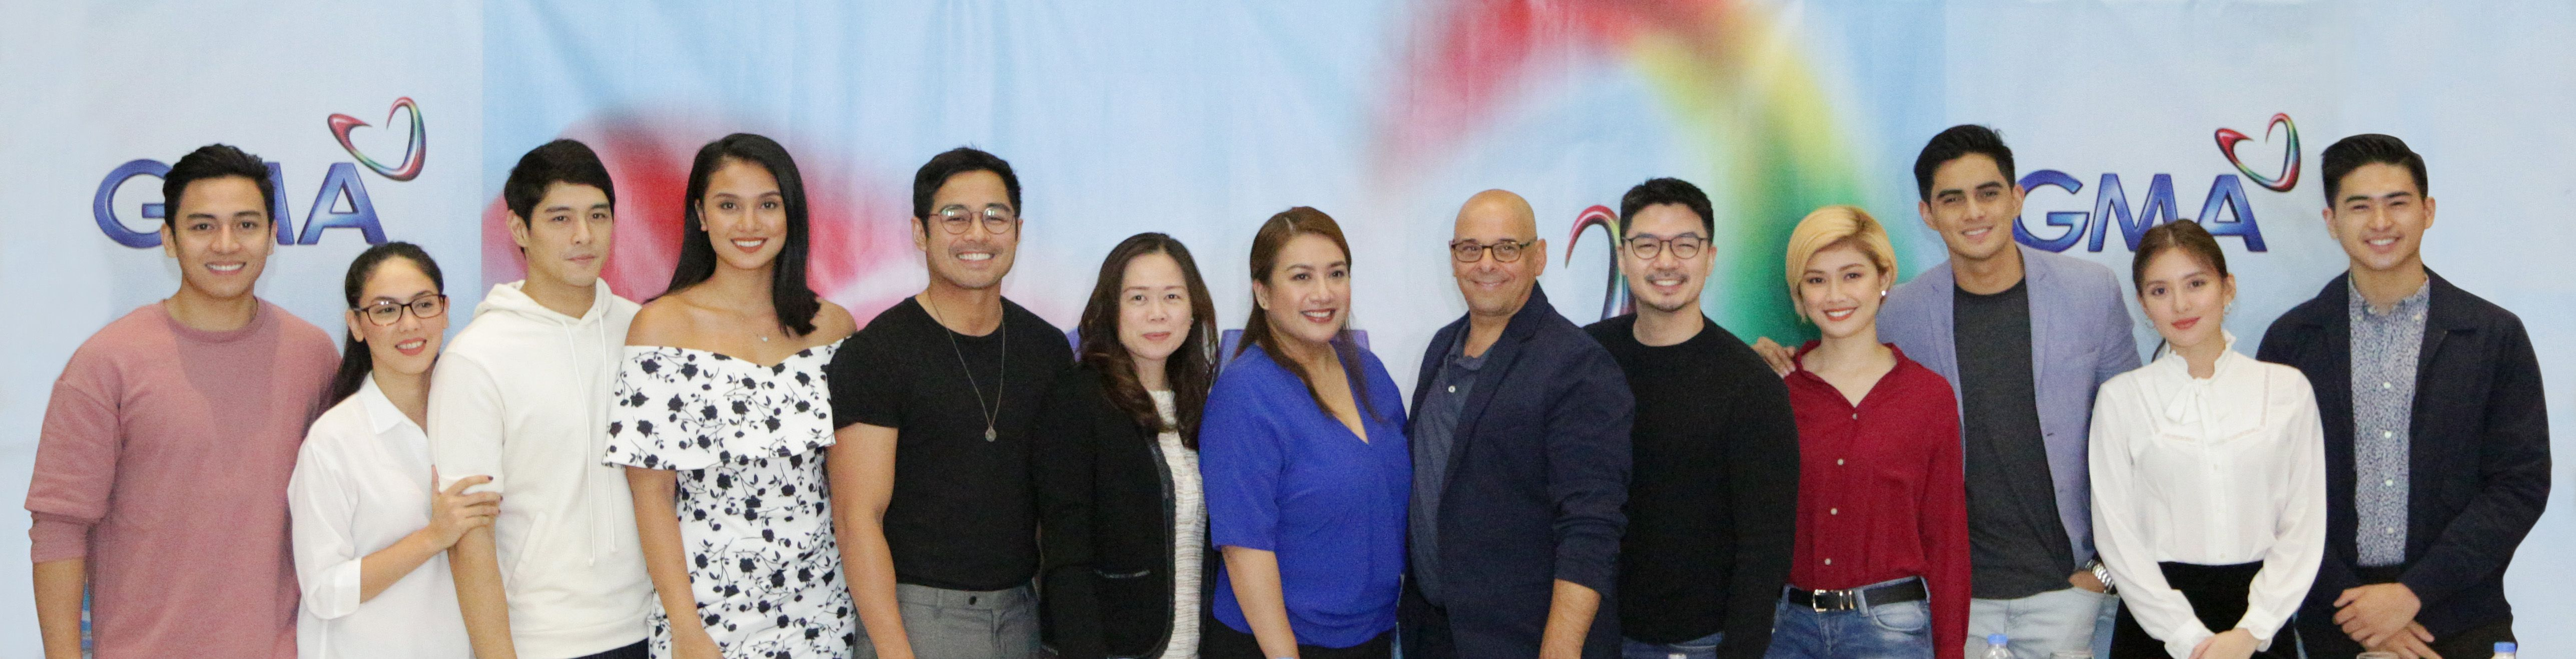 Going Beyond Acting Anthony Bova Introduces New Series Of Extensive Workshops To Gma Artist Center Talents Acting Workshops New Series Anthony